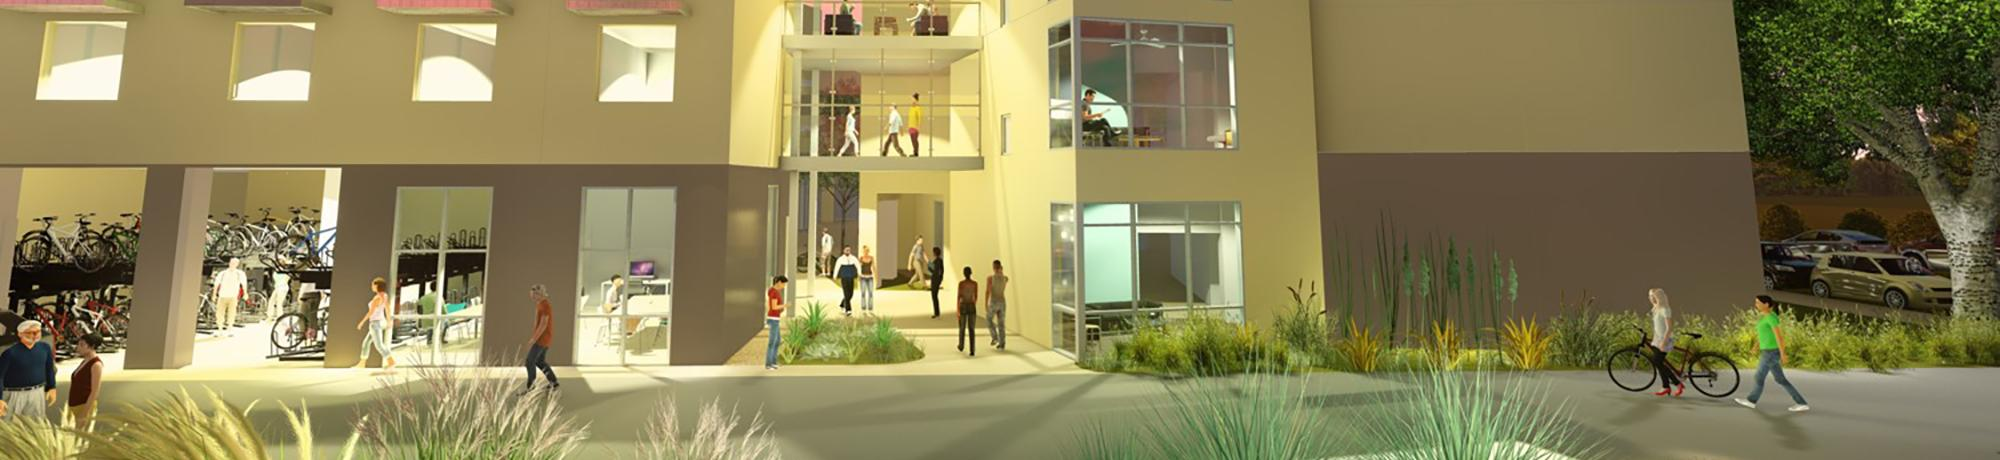 rendering of uc davis emerson hall renovation